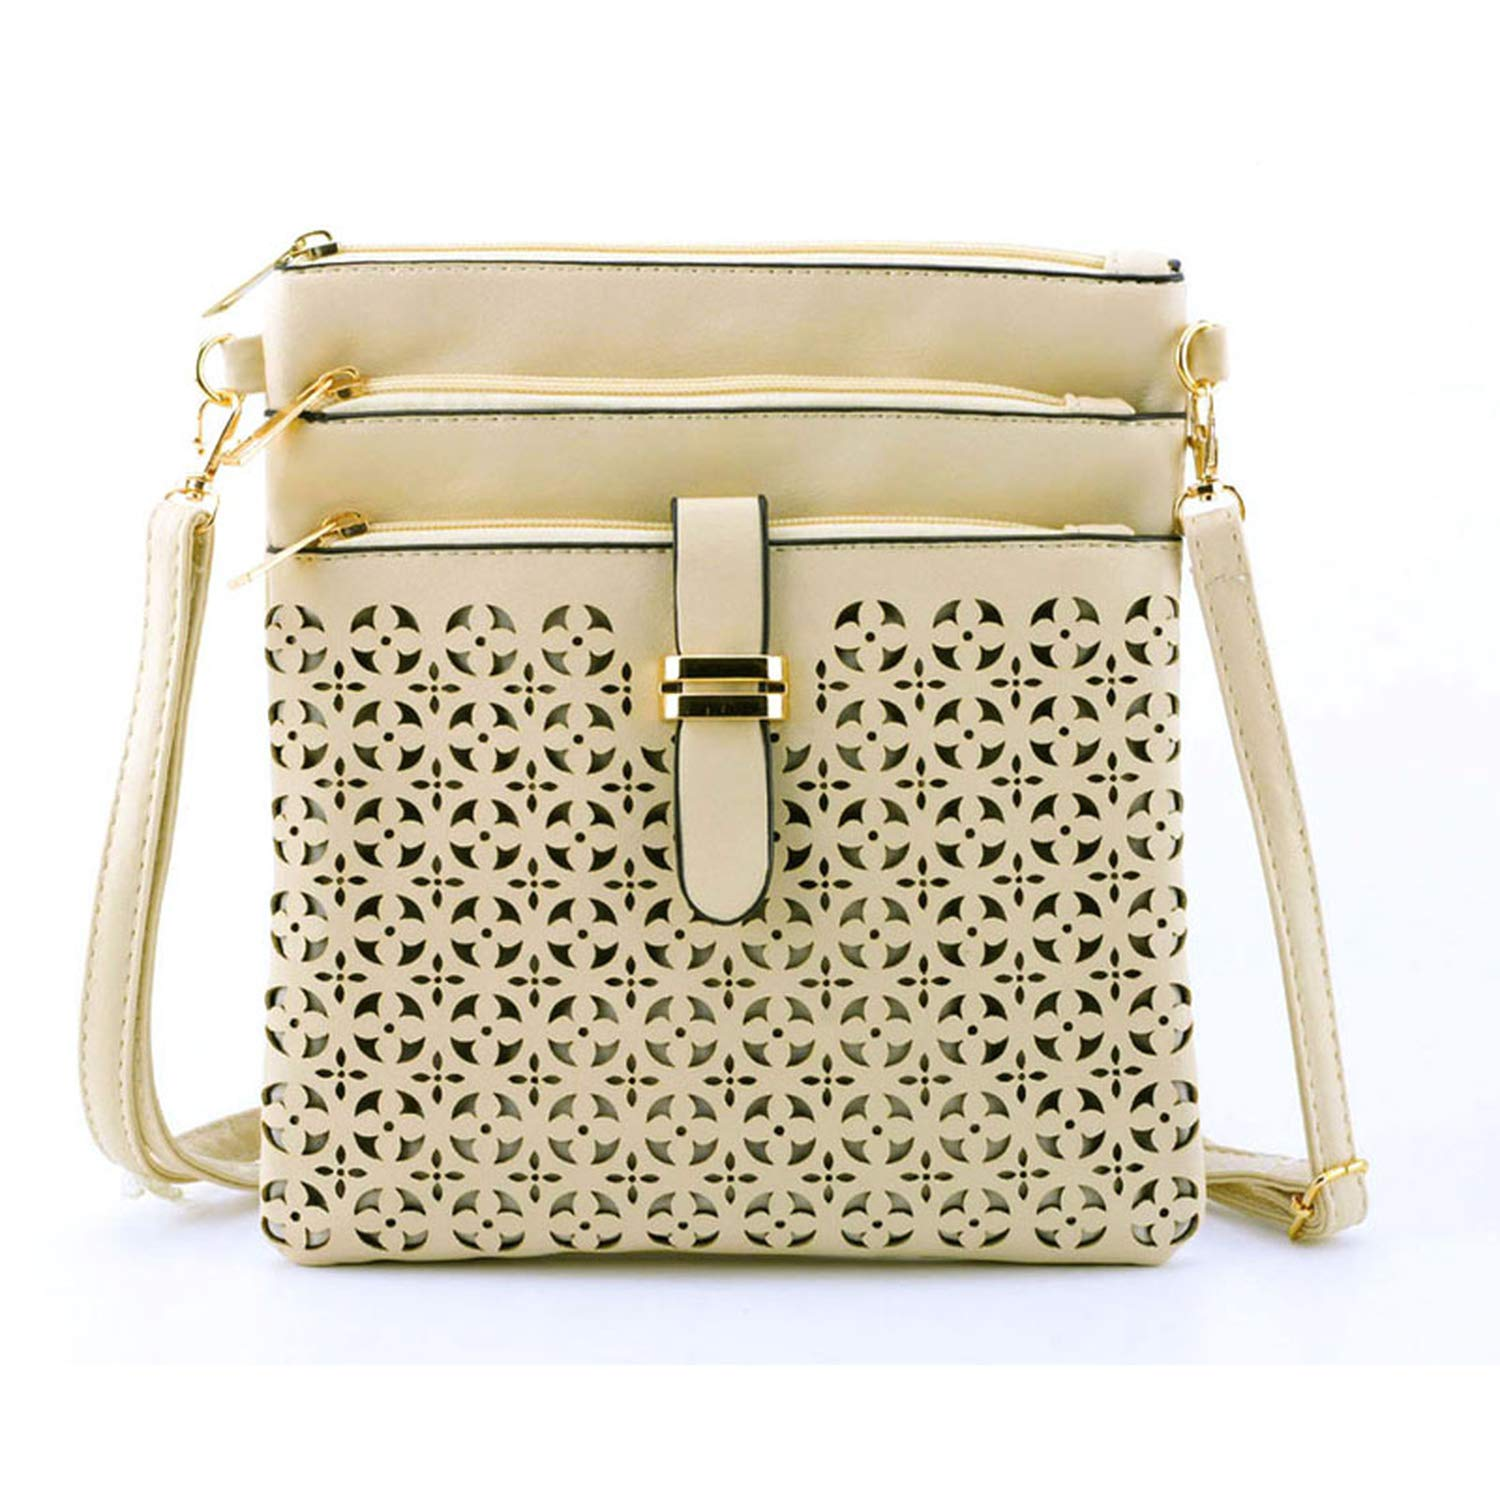 Small Bag Women Messenger Bags Soft PU Leather Hollow Out ...